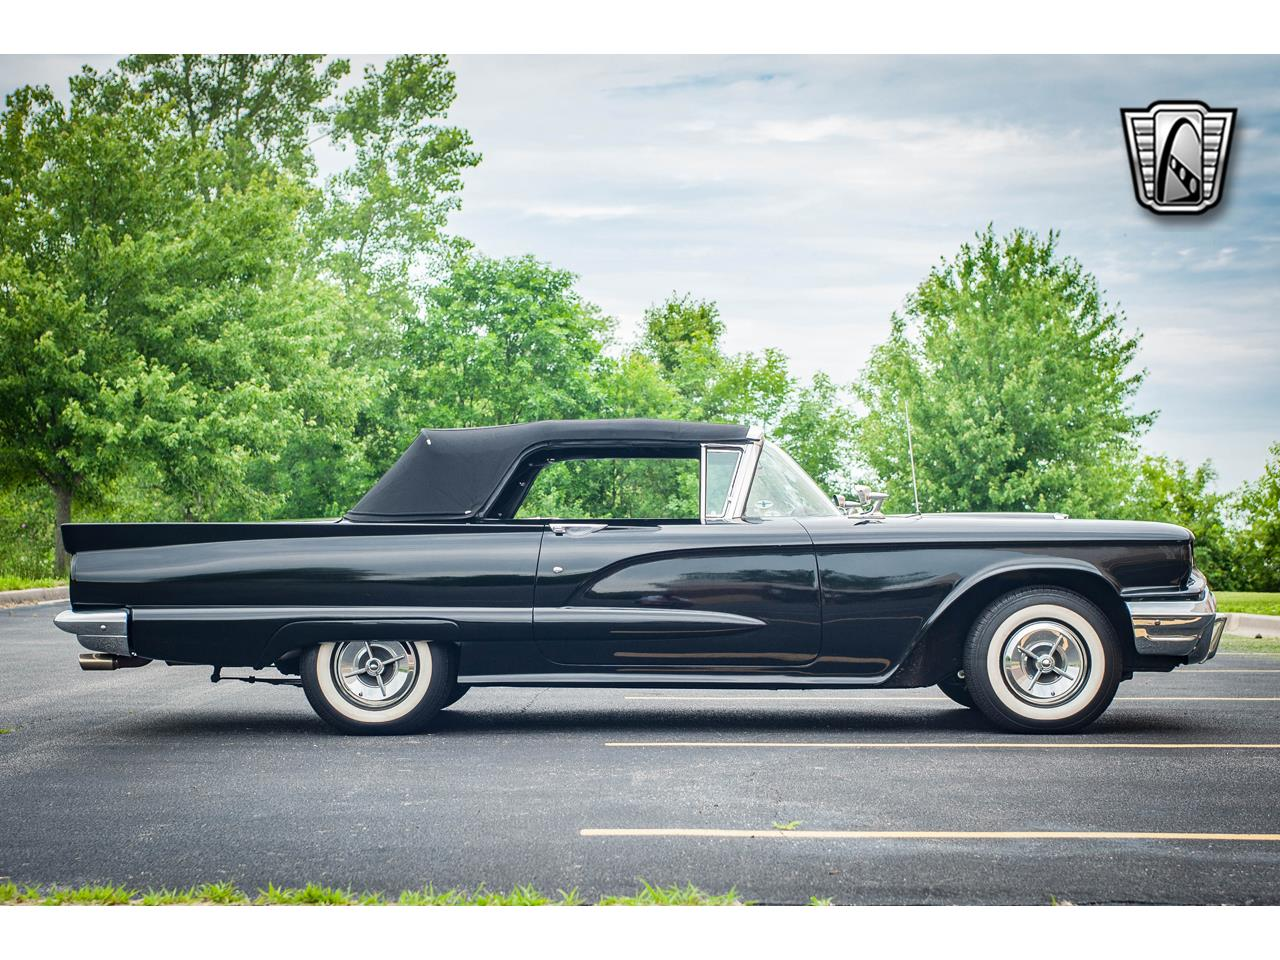 Large Picture of 1960 Ford Thunderbird - $40,500.00 Offered by Gateway Classic Cars - St. Louis - QB9W